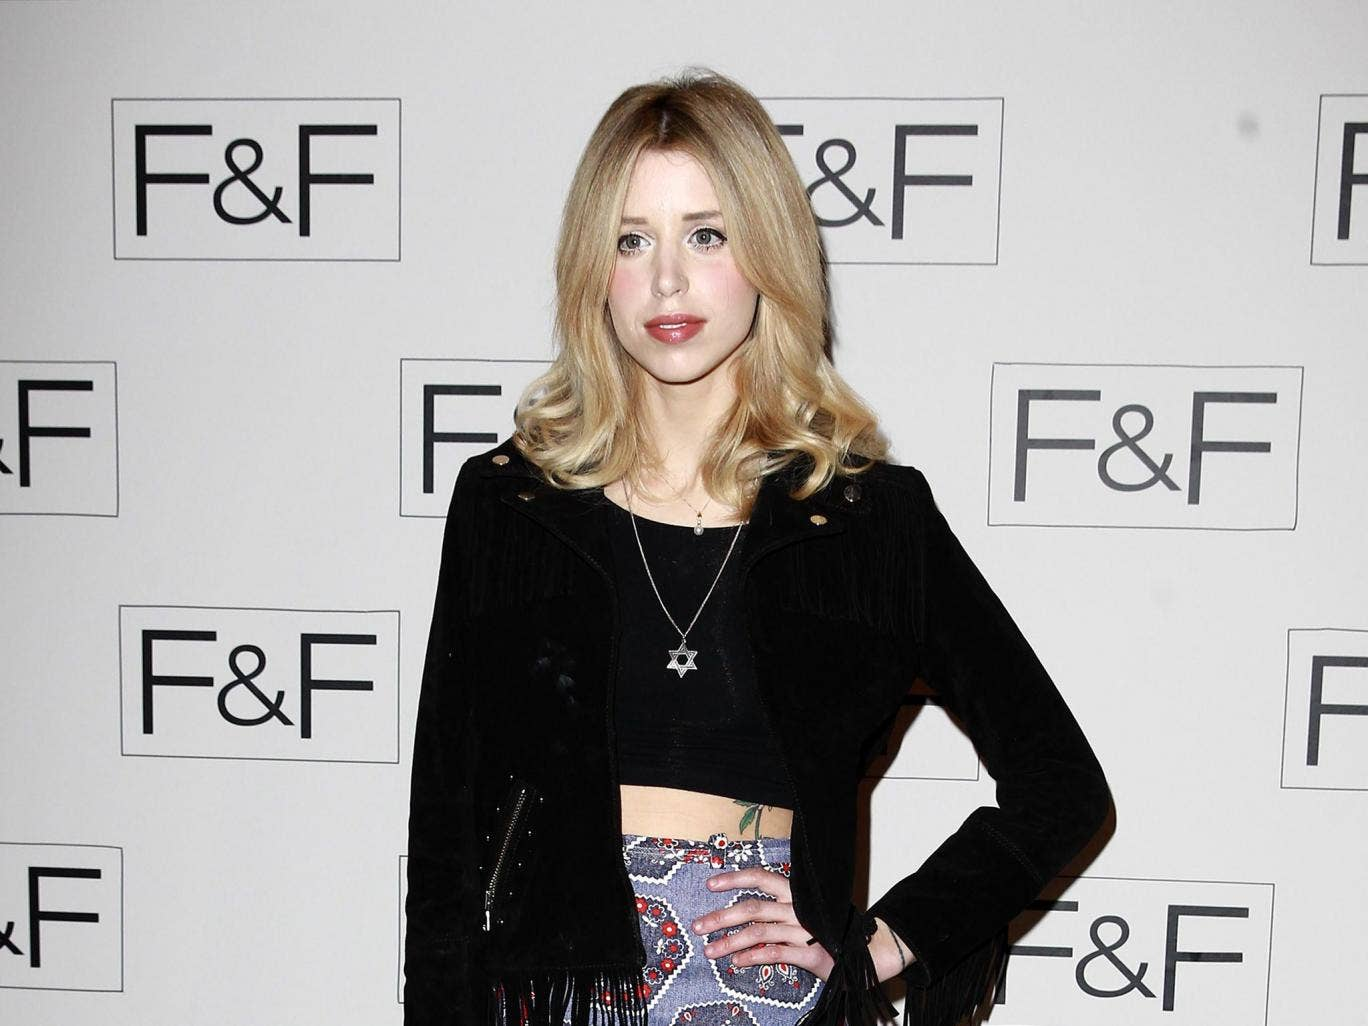 Peaches Geldof attends the F&F aw14 Fashion show at Somerset House in 2014